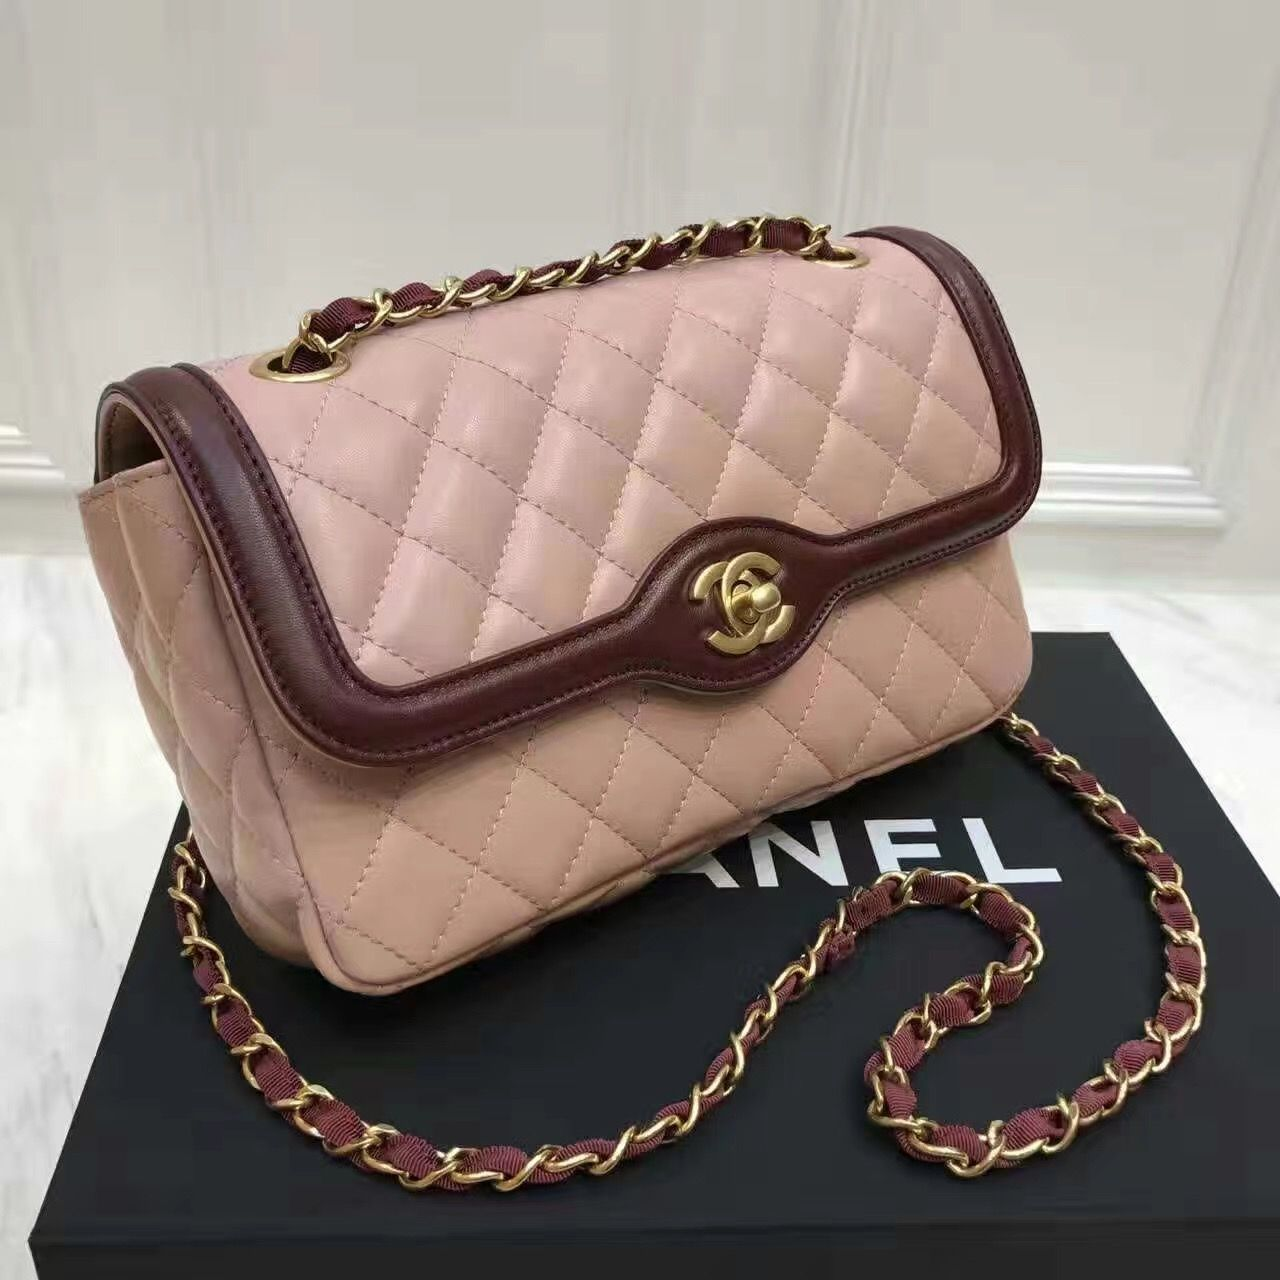 Replica chanel vernis classic flap bag